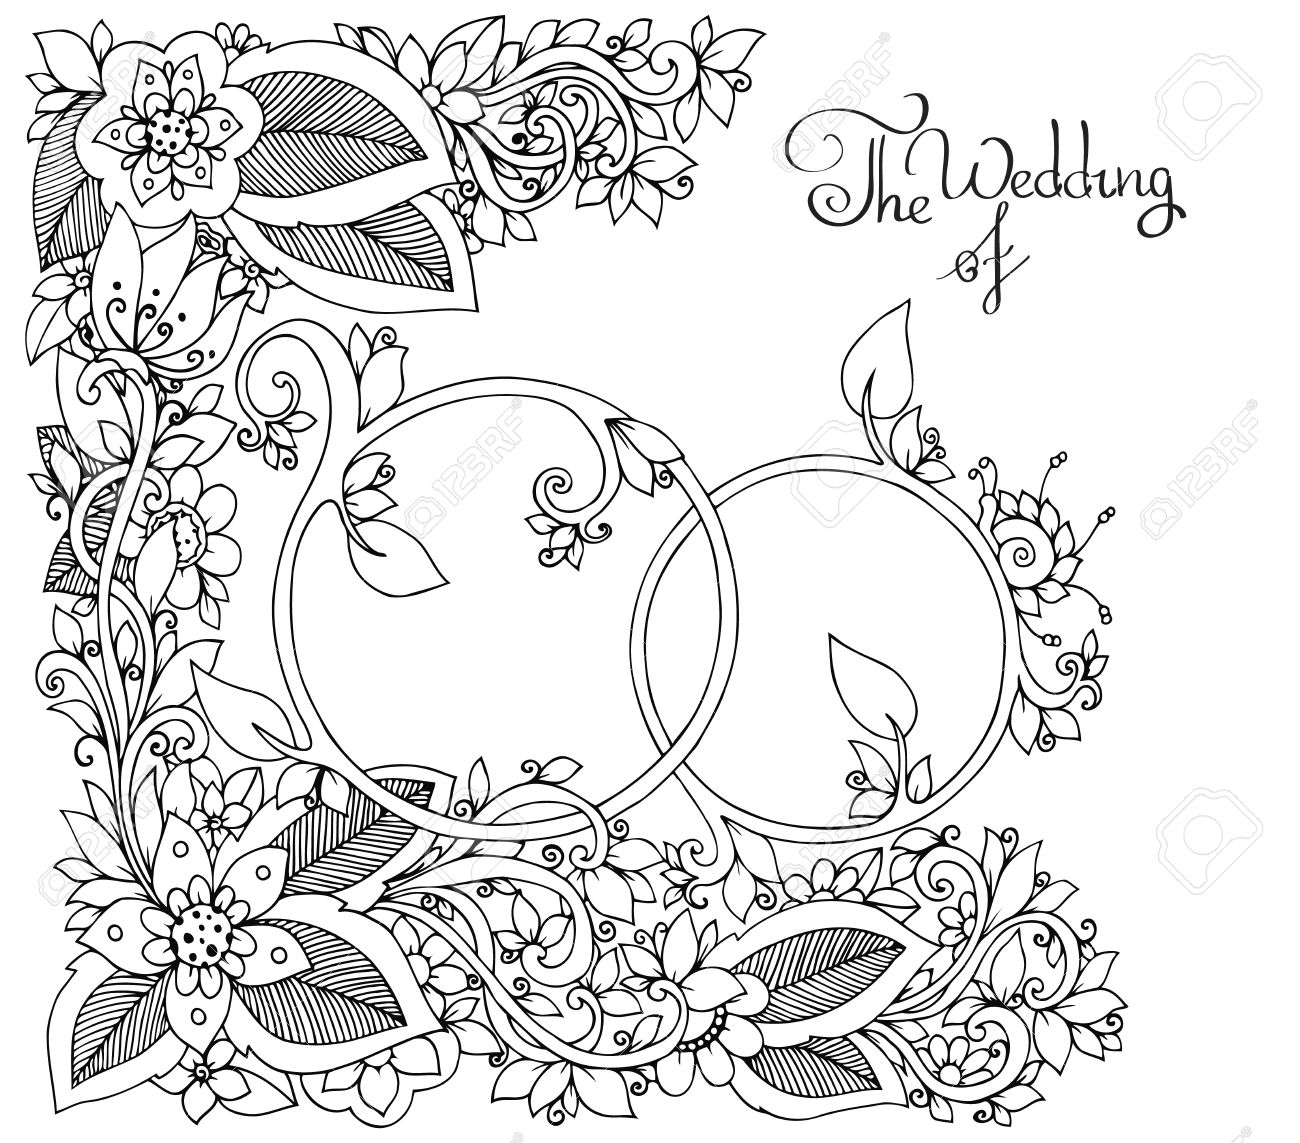 Coloring book wedding pictures - Vector Illustration Zen Tangle Wedding Rings In Flowers Doodle Drawing Floral Coloring Book